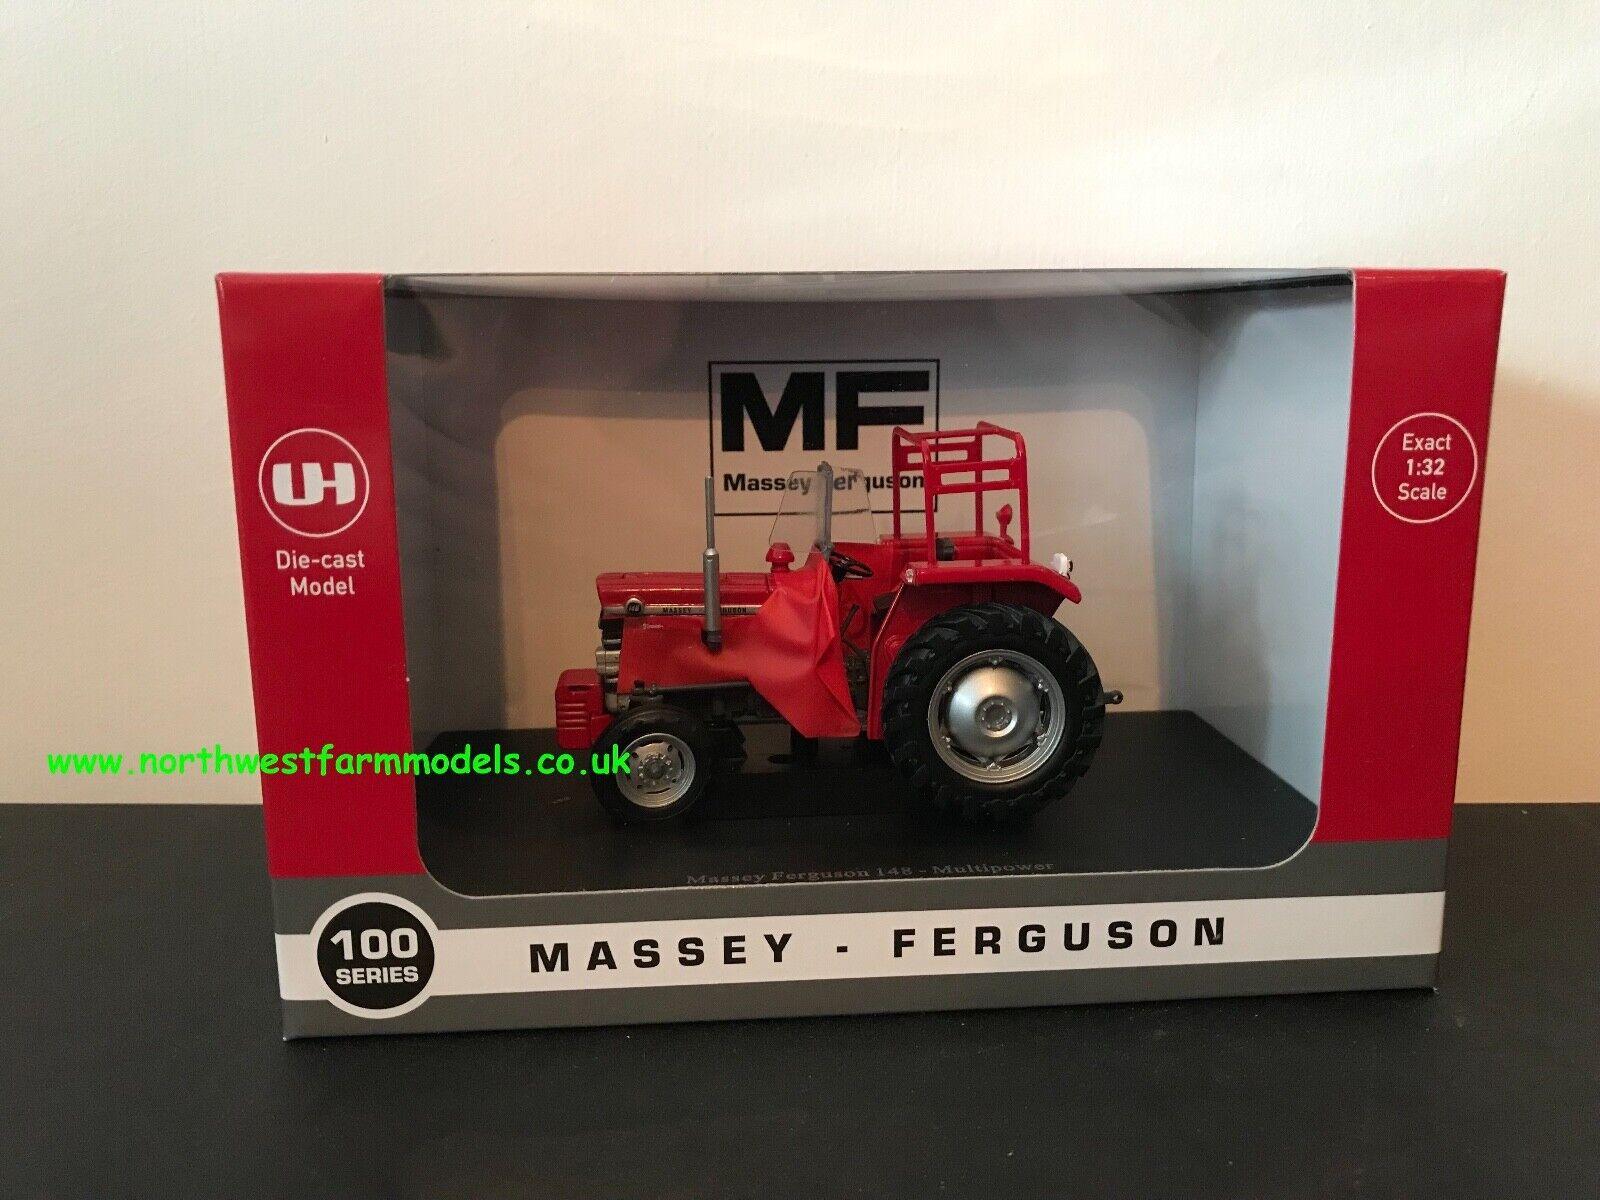 UNIVERSAL HOBBIES 5368 1 32 SCALE MASSEY FERGUSON 148 MULTIPOWER RED GIANTS